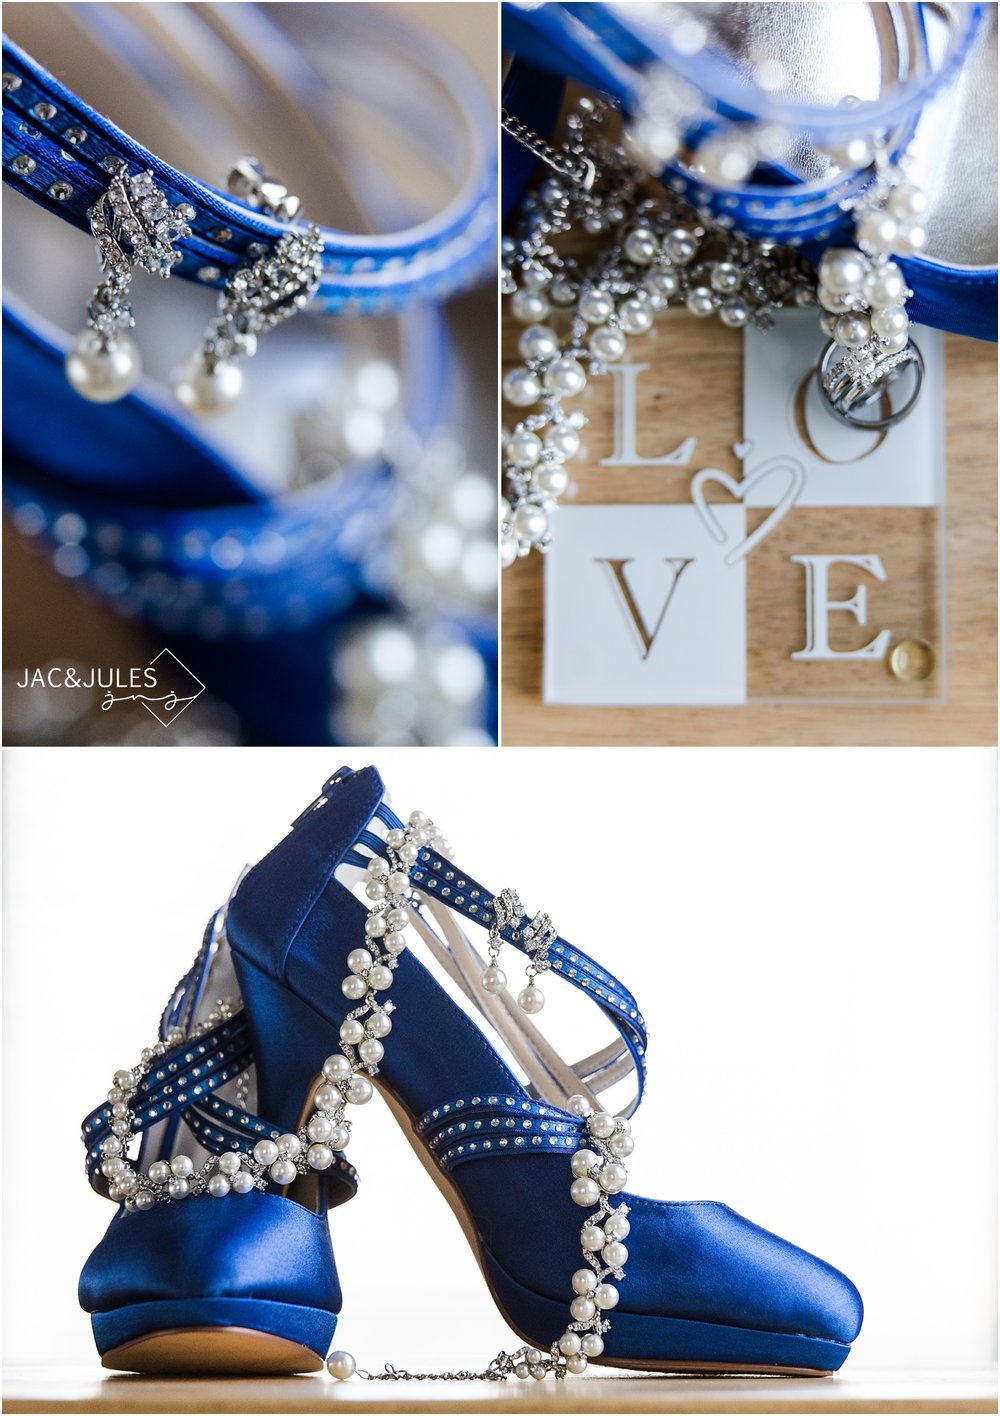 Pearl bridal jewelry on blue shoes.